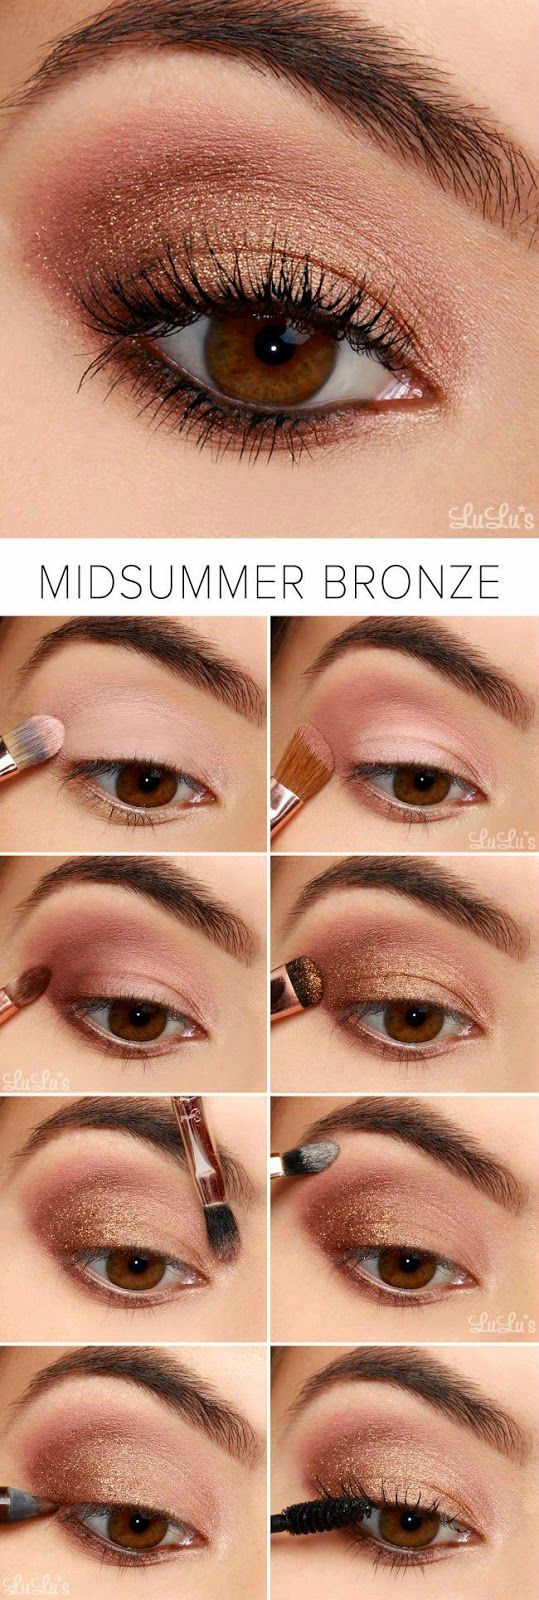 Summer Eye Makeup Latest Summer Makeup Ideas Trends 2019 2020 Beauty Tips